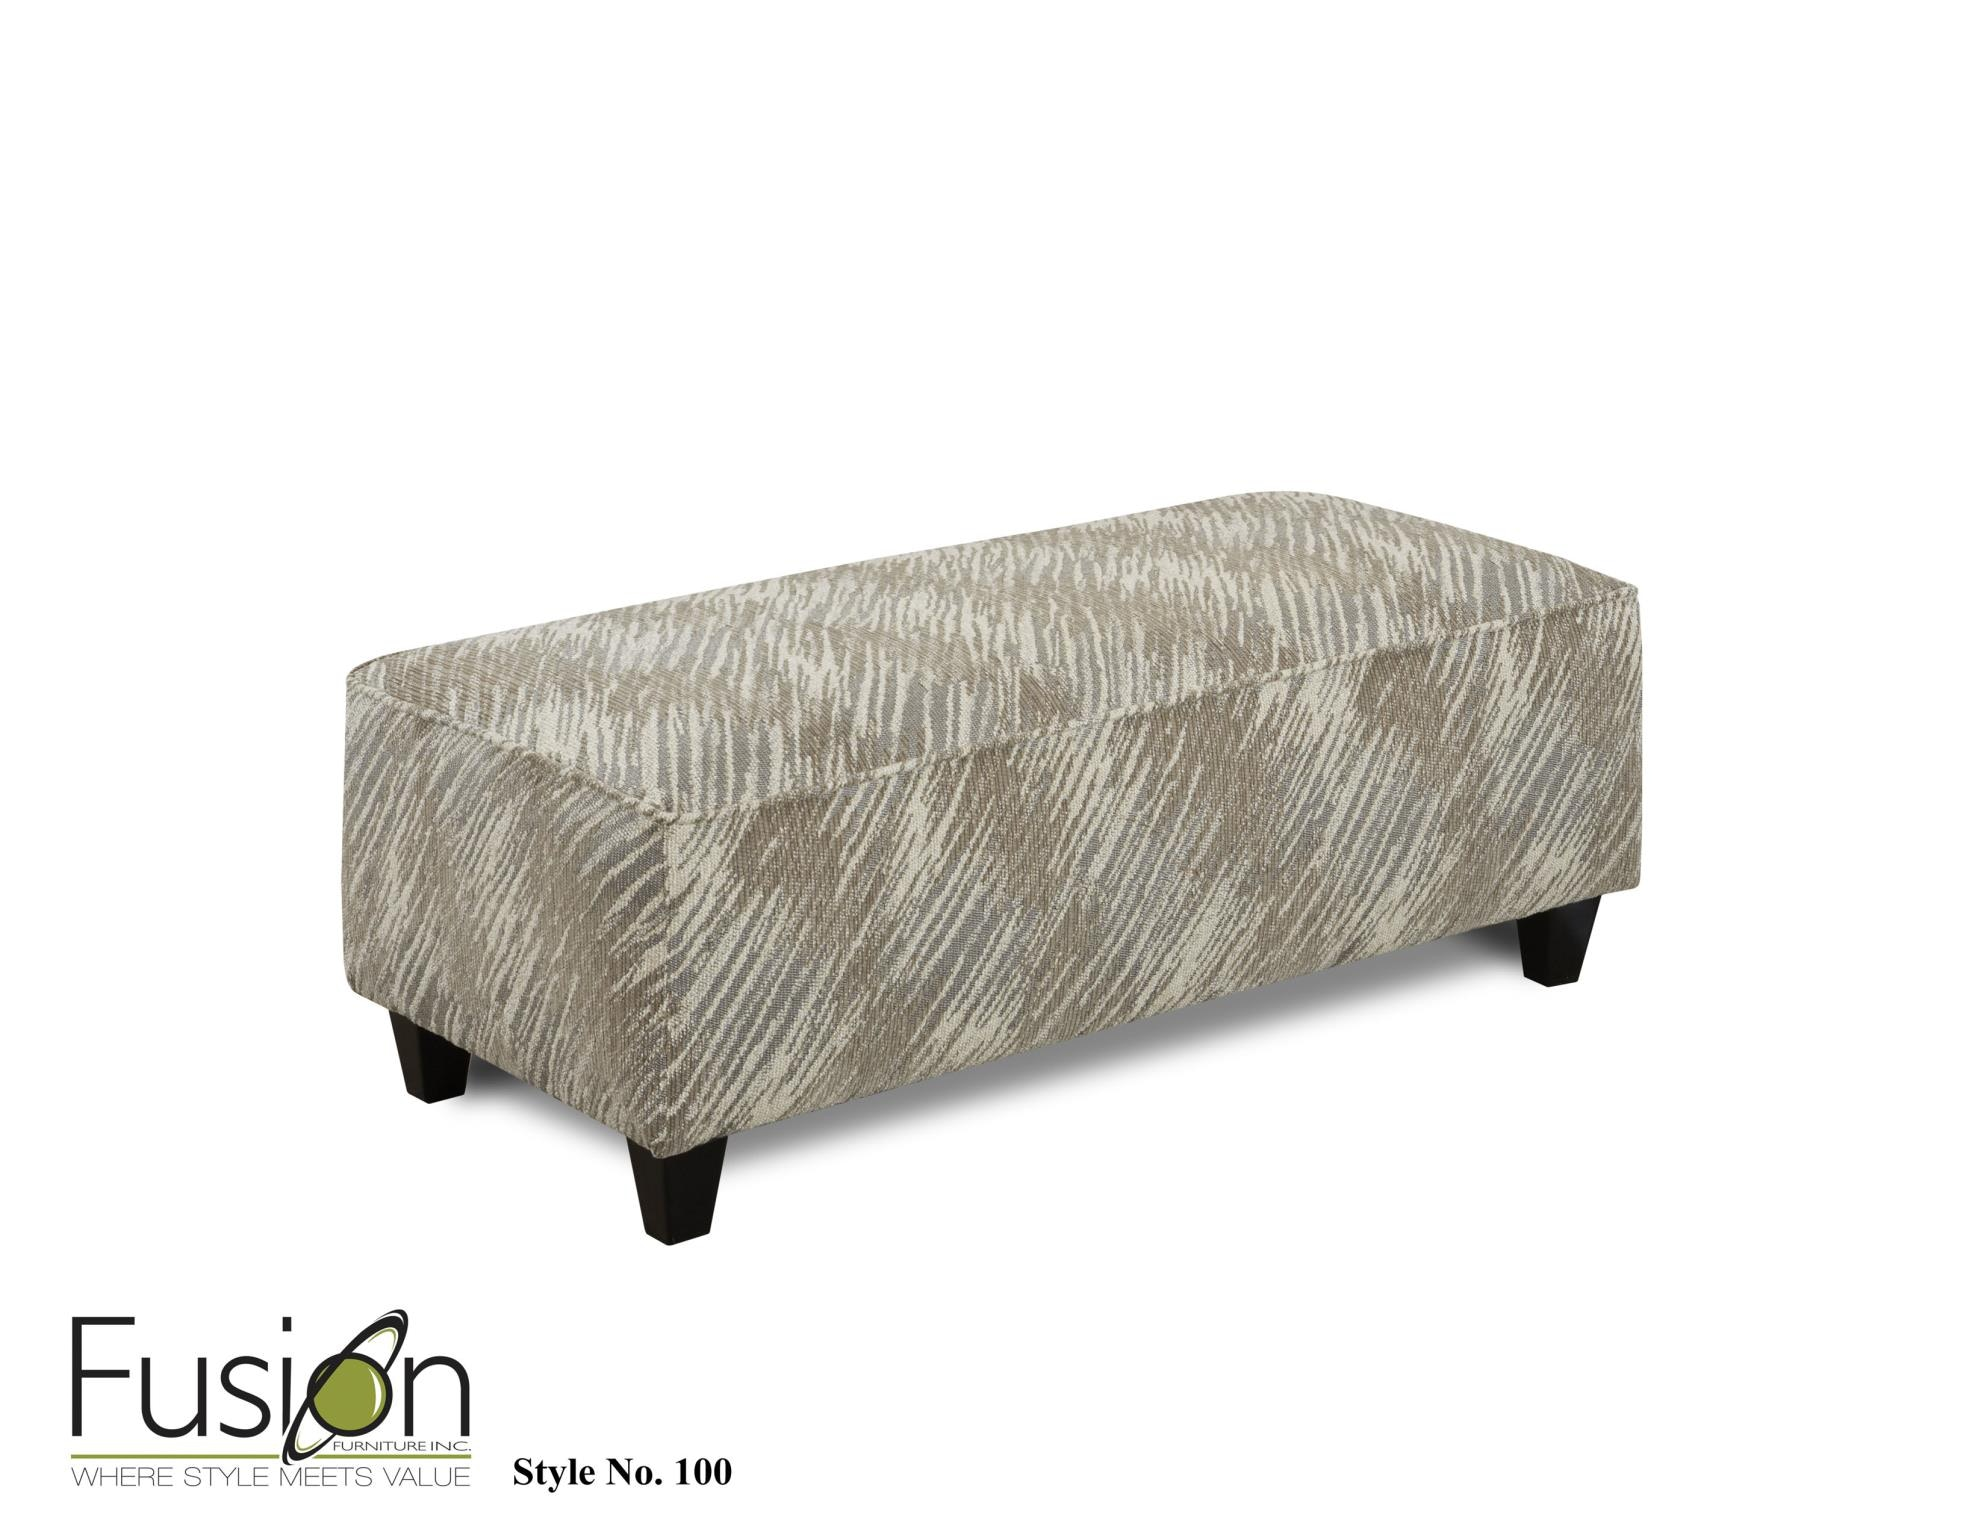 Delightful Fusion Living Room Ottoman 100Desert Retreat Stone At B.F. Myers Furniture